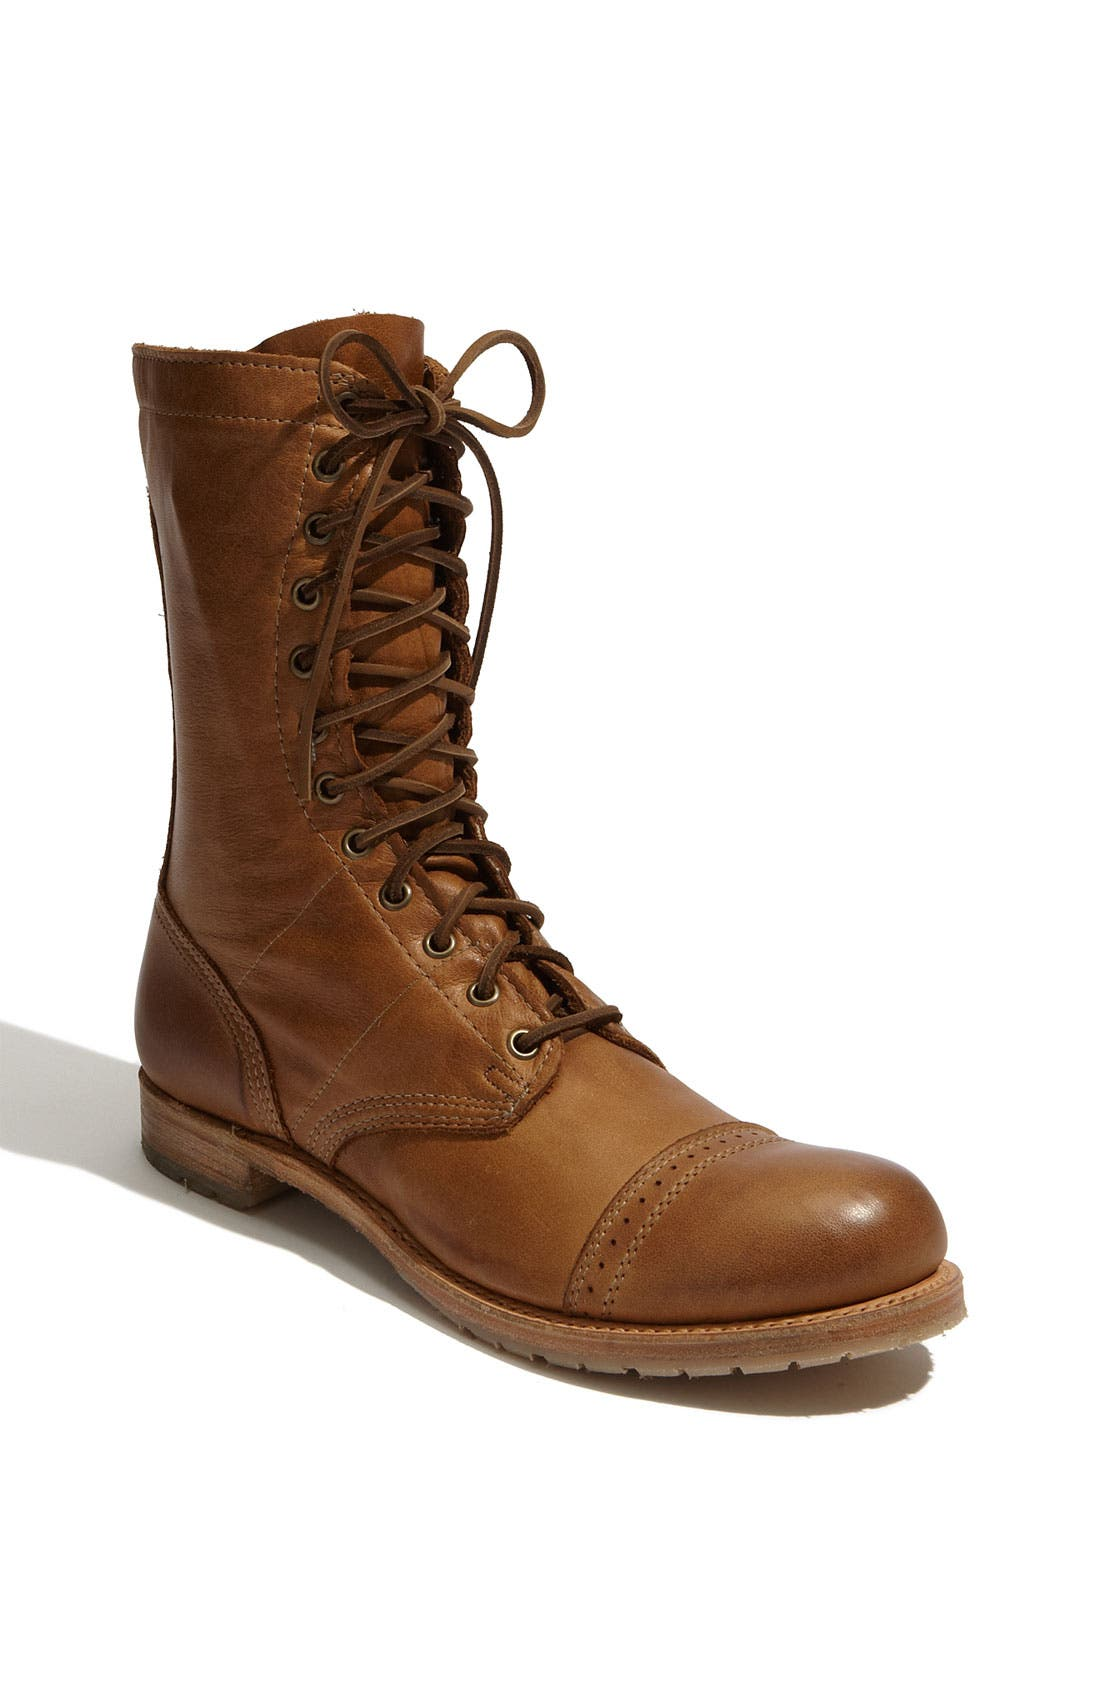 Alternate Image 1 Selected - Vintage Shoe Company 'Nathaniel' Boot (Online Only)